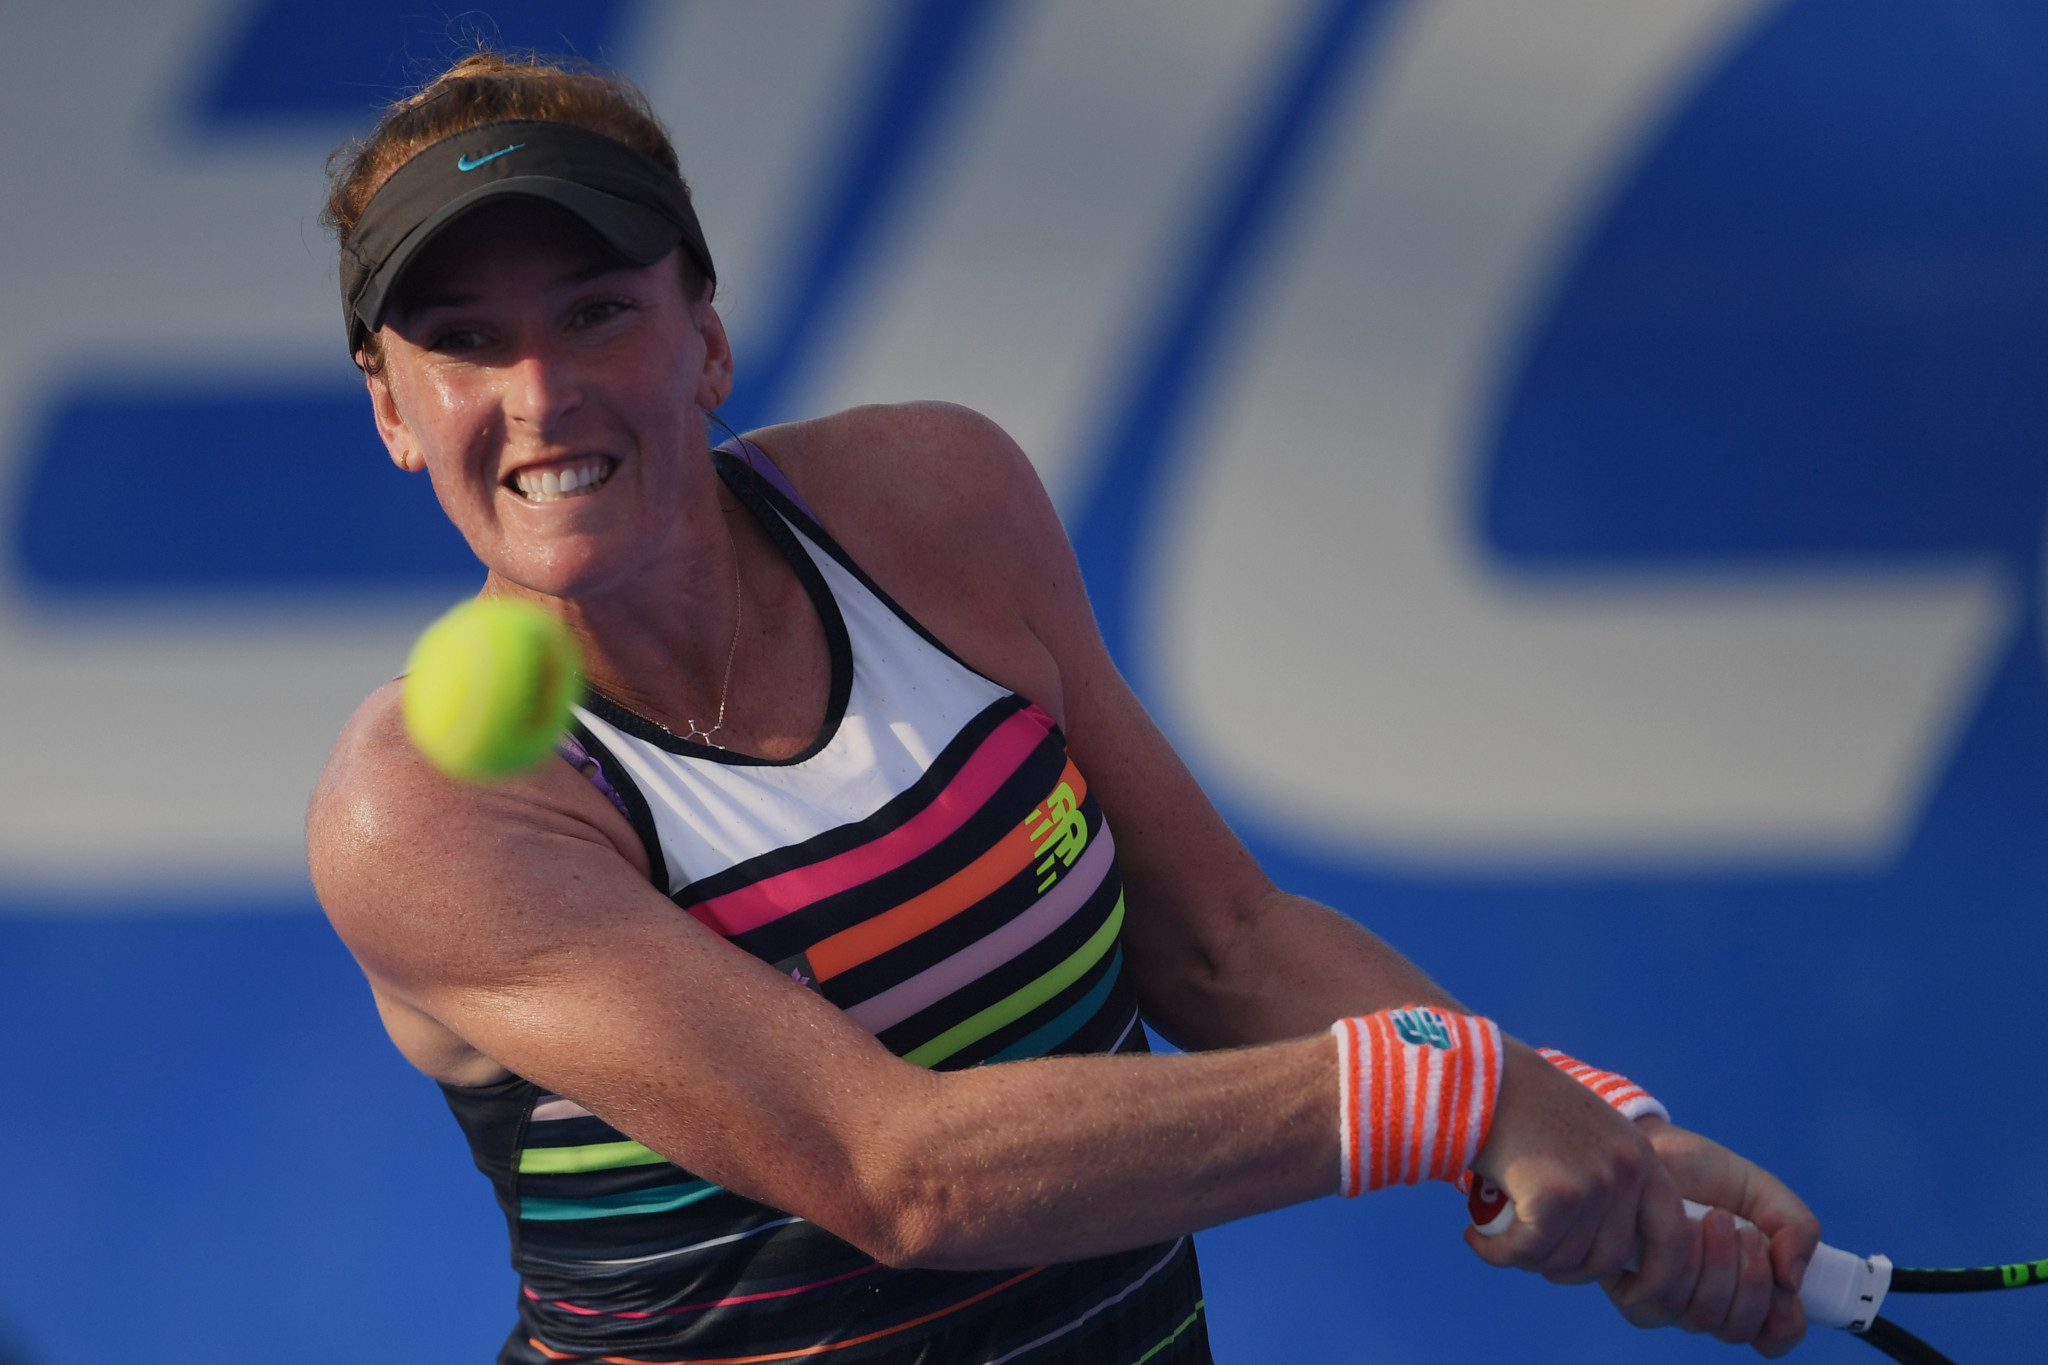 Brengle files lawsuit against tennis authorities for injuries suffered during drug tests